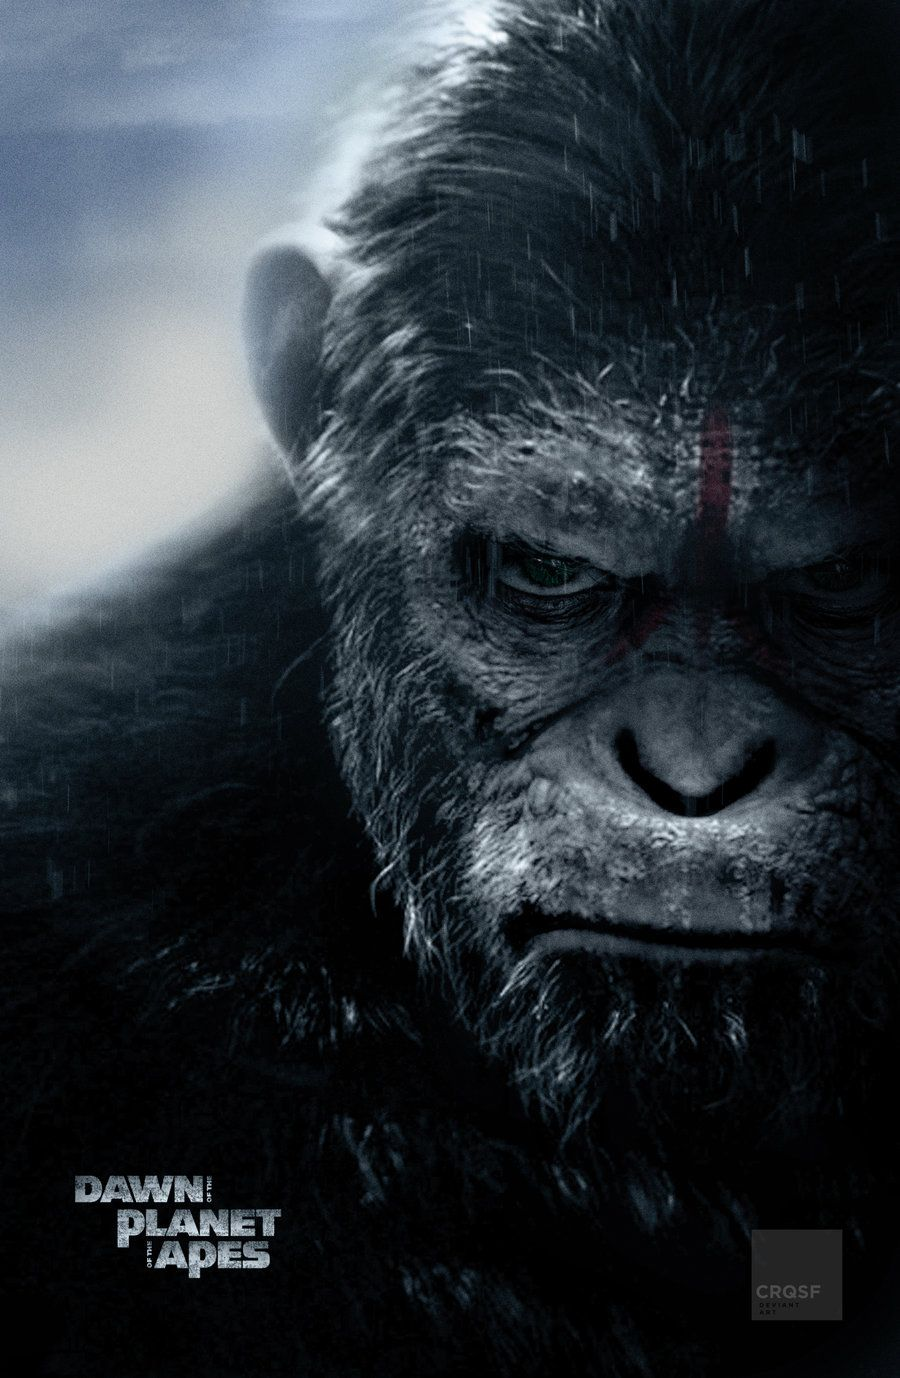 Dawn Of The Planet Of The Apes Fan Poster By Crqsf On Deviantart Planet Of The Apes Dawn Of The Planet Apes